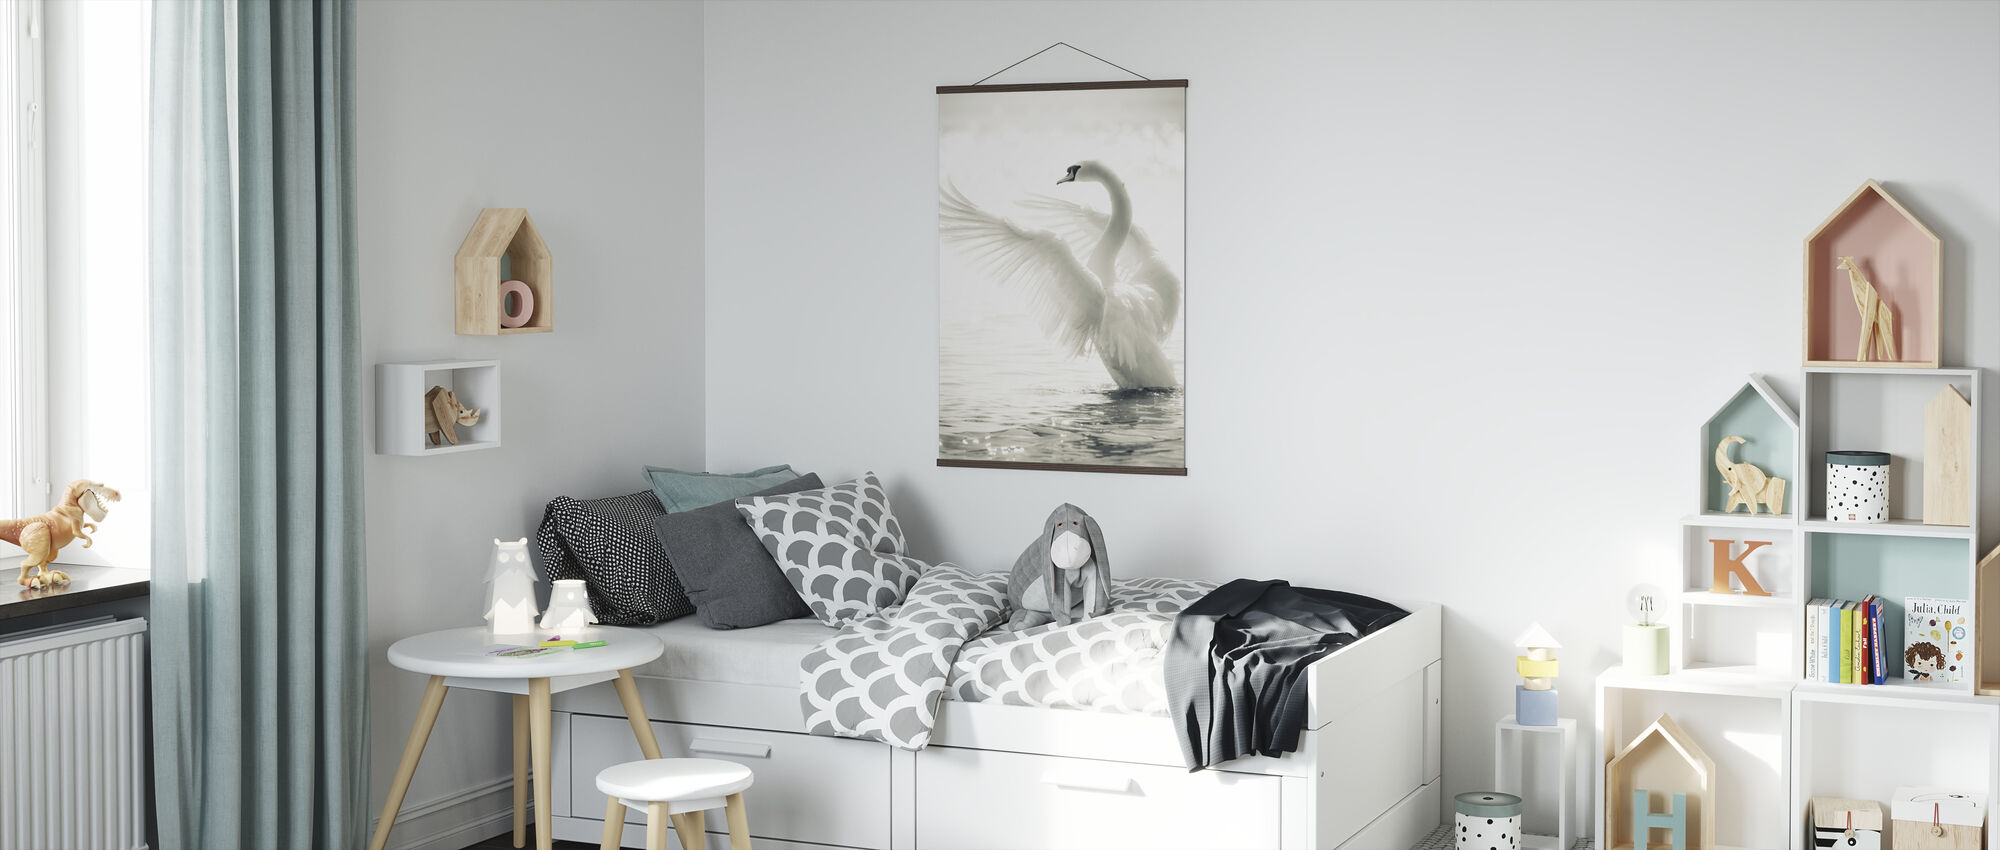 Graceful Swan - Poster - Kids Room